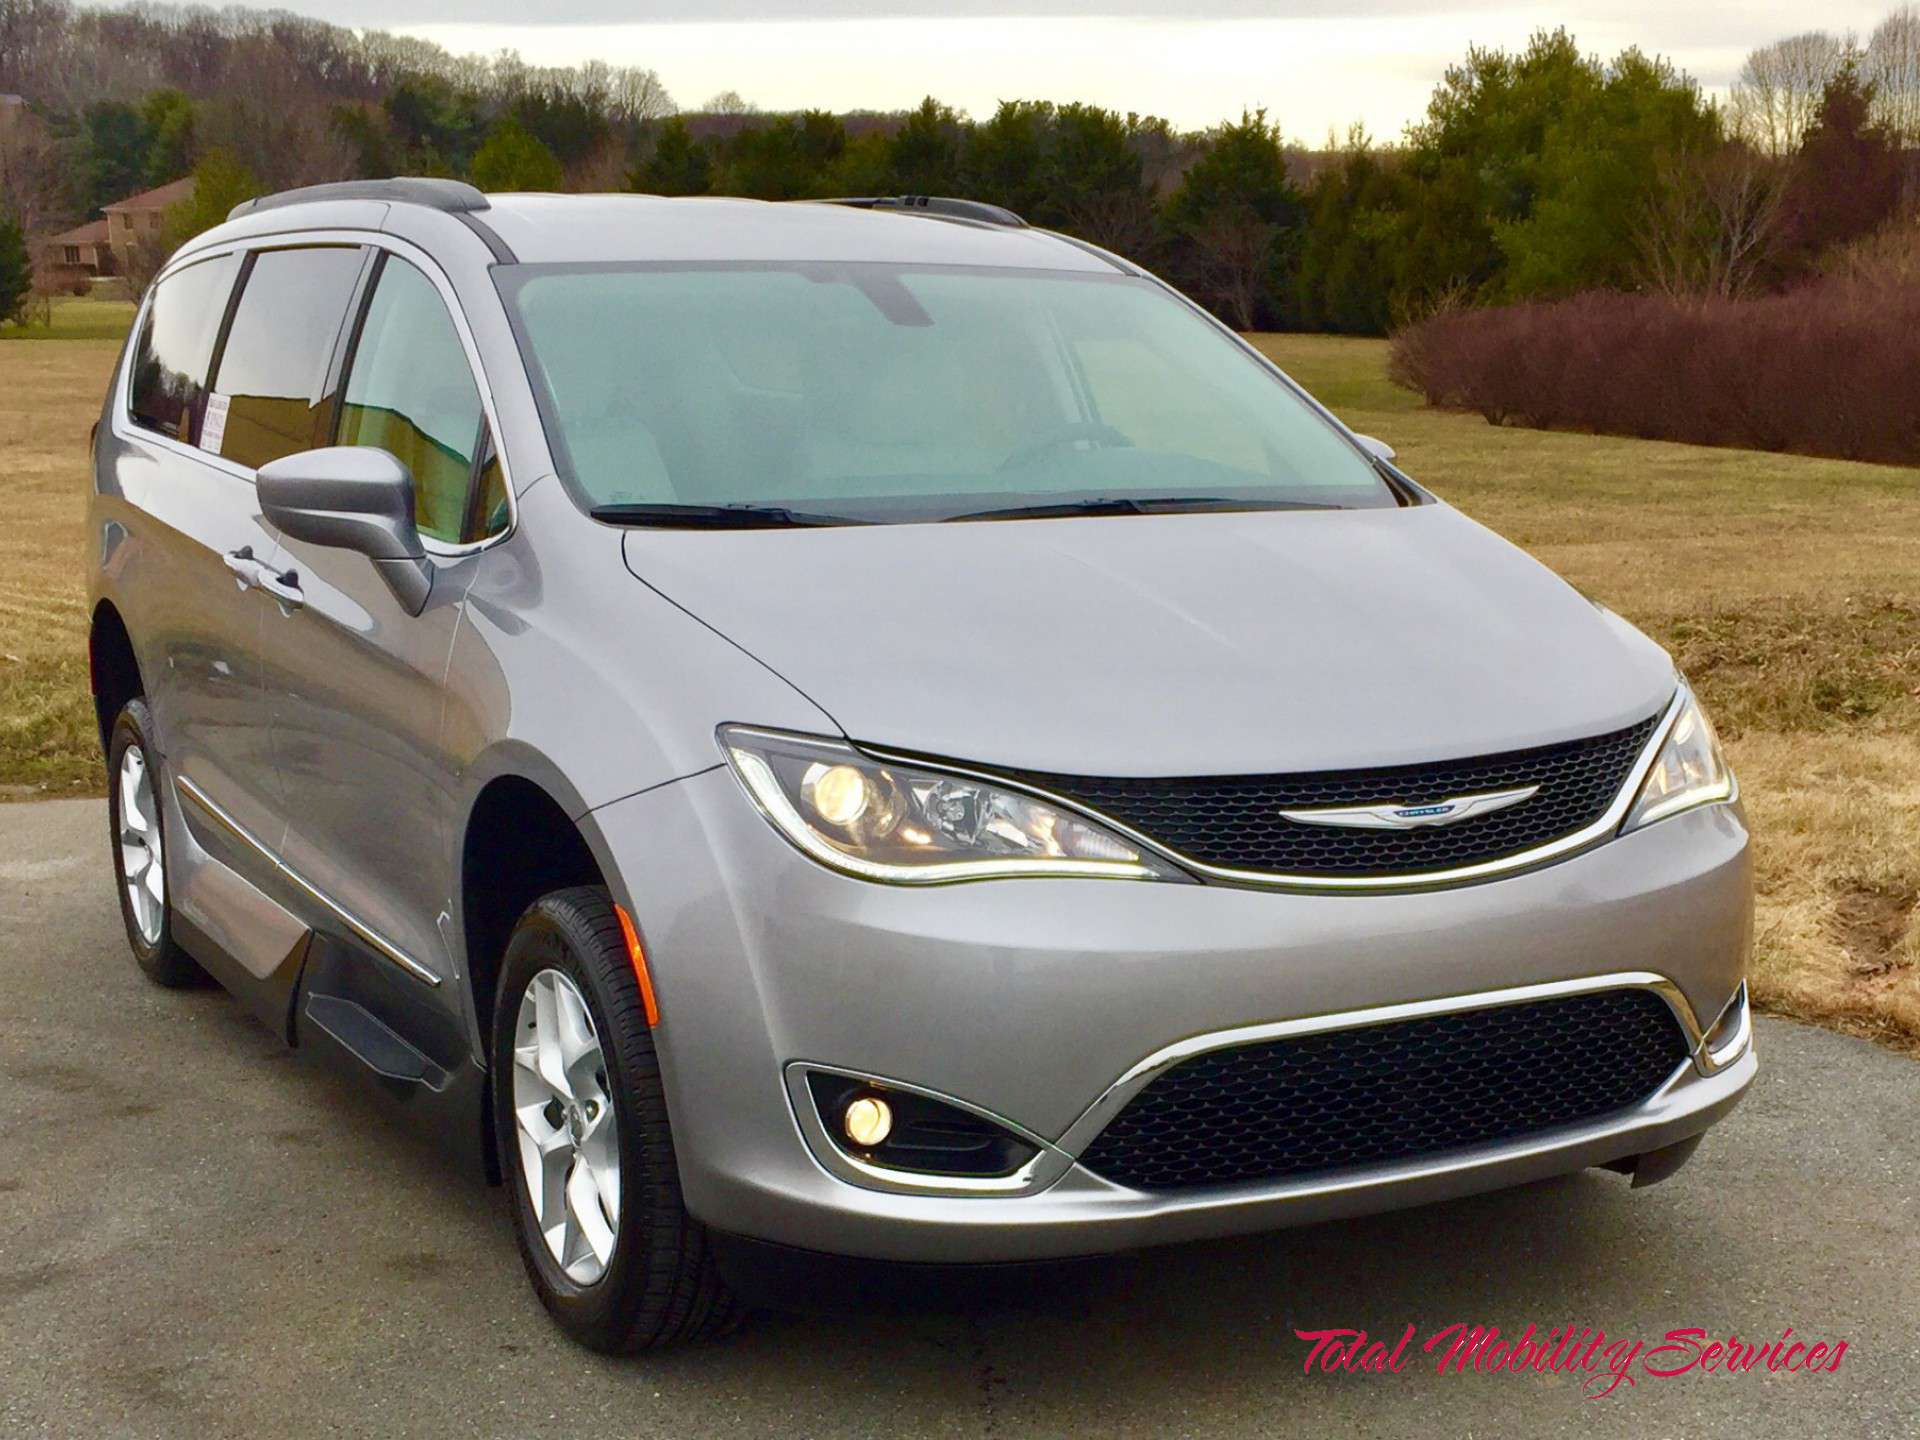 wheelchair van for sale 2017 chrysler pacifica stock hr538968 total mobility services. Black Bedroom Furniture Sets. Home Design Ideas